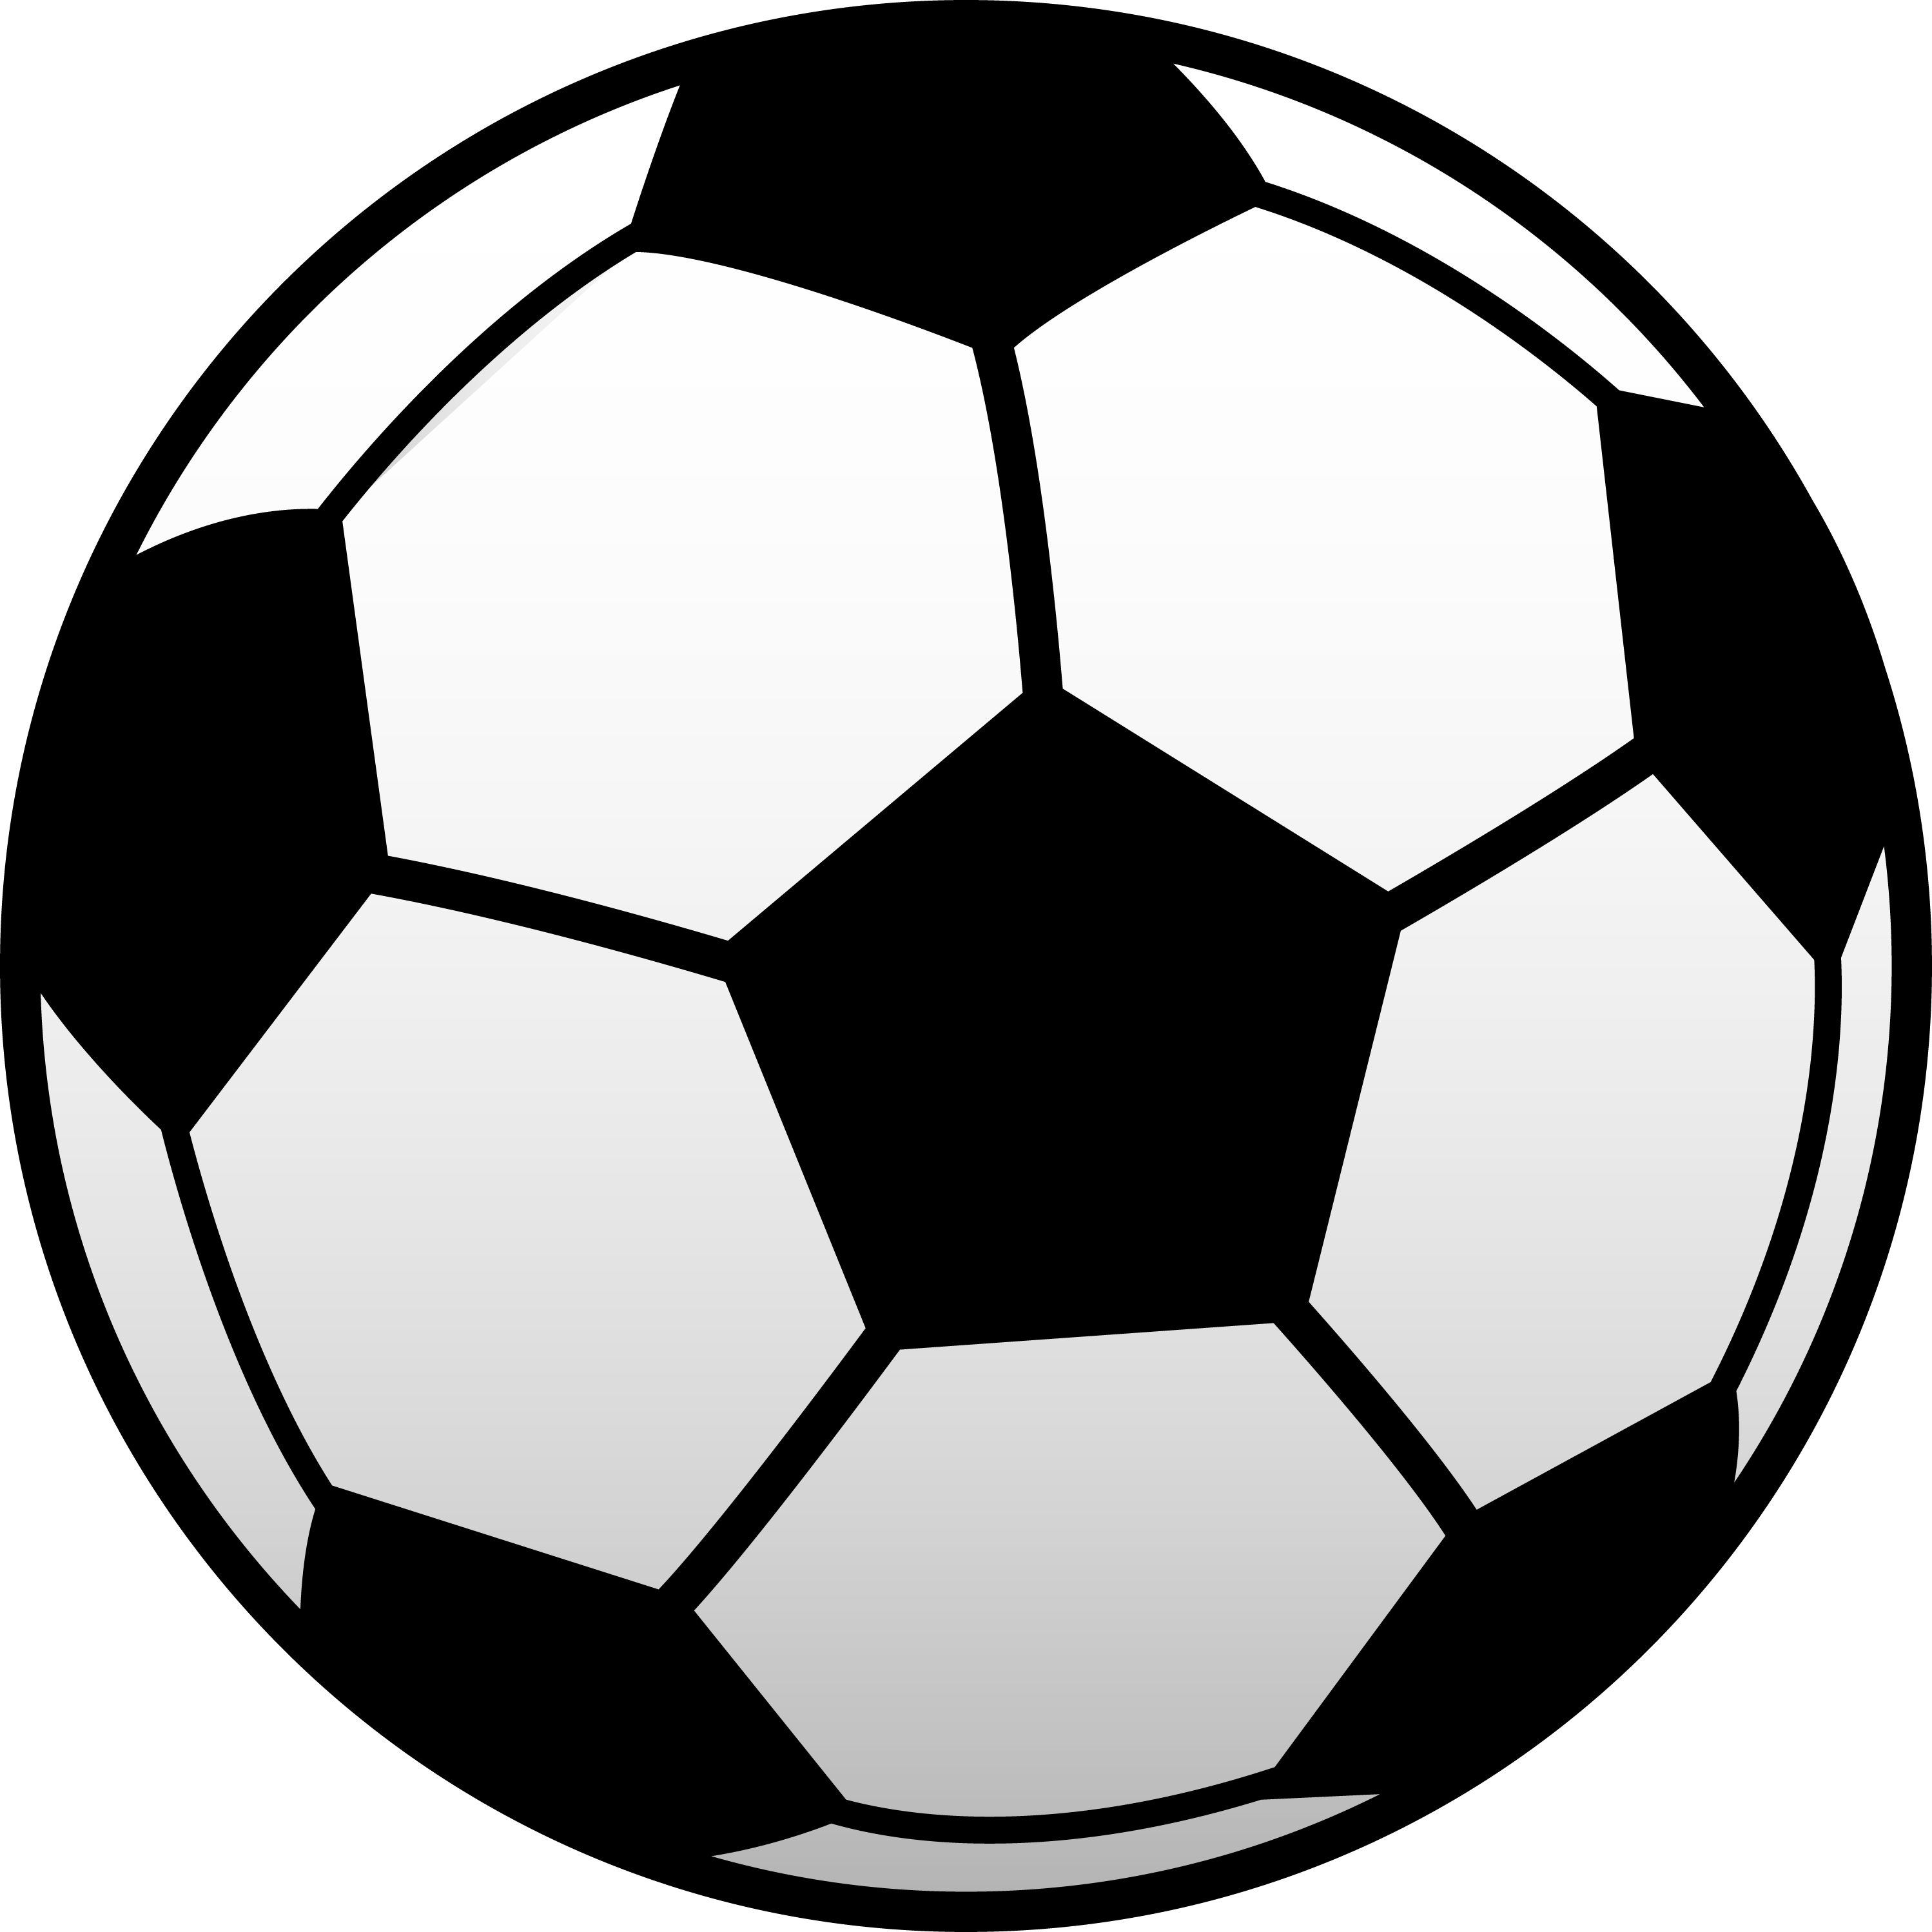 2997x2997 Soccer Ball Black And White Clipart